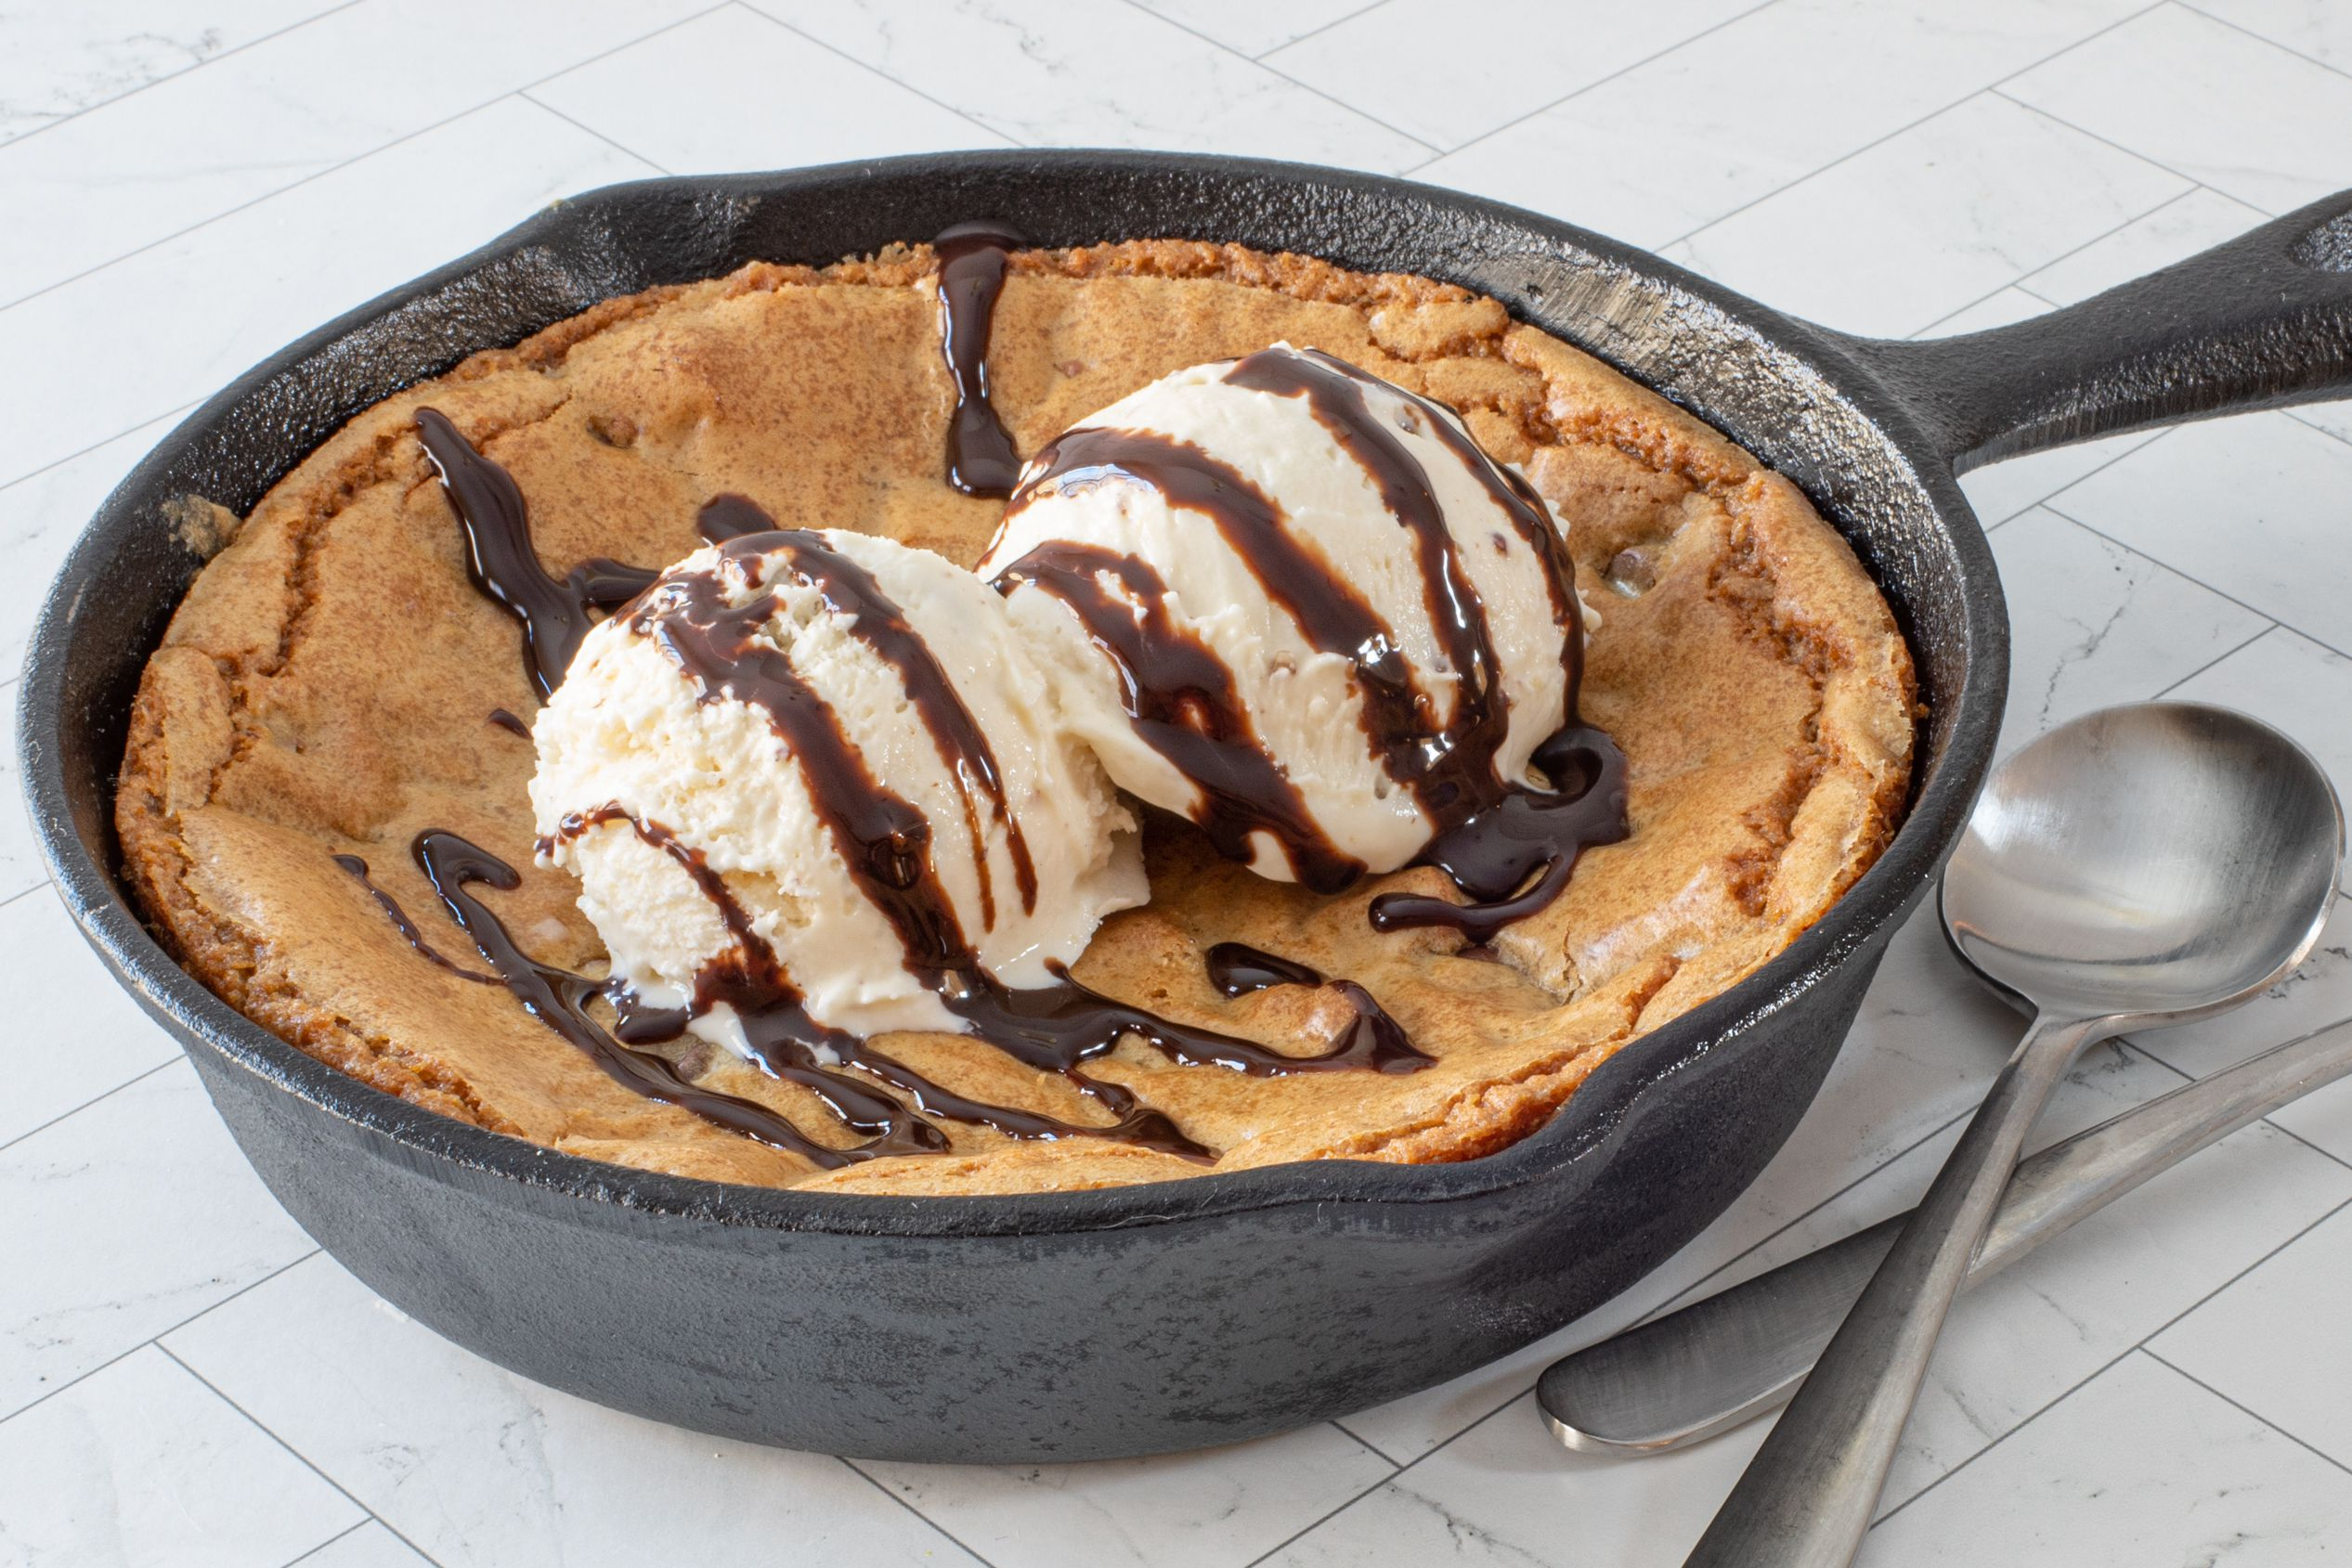 The Pizookie Is a Classic for a Reason